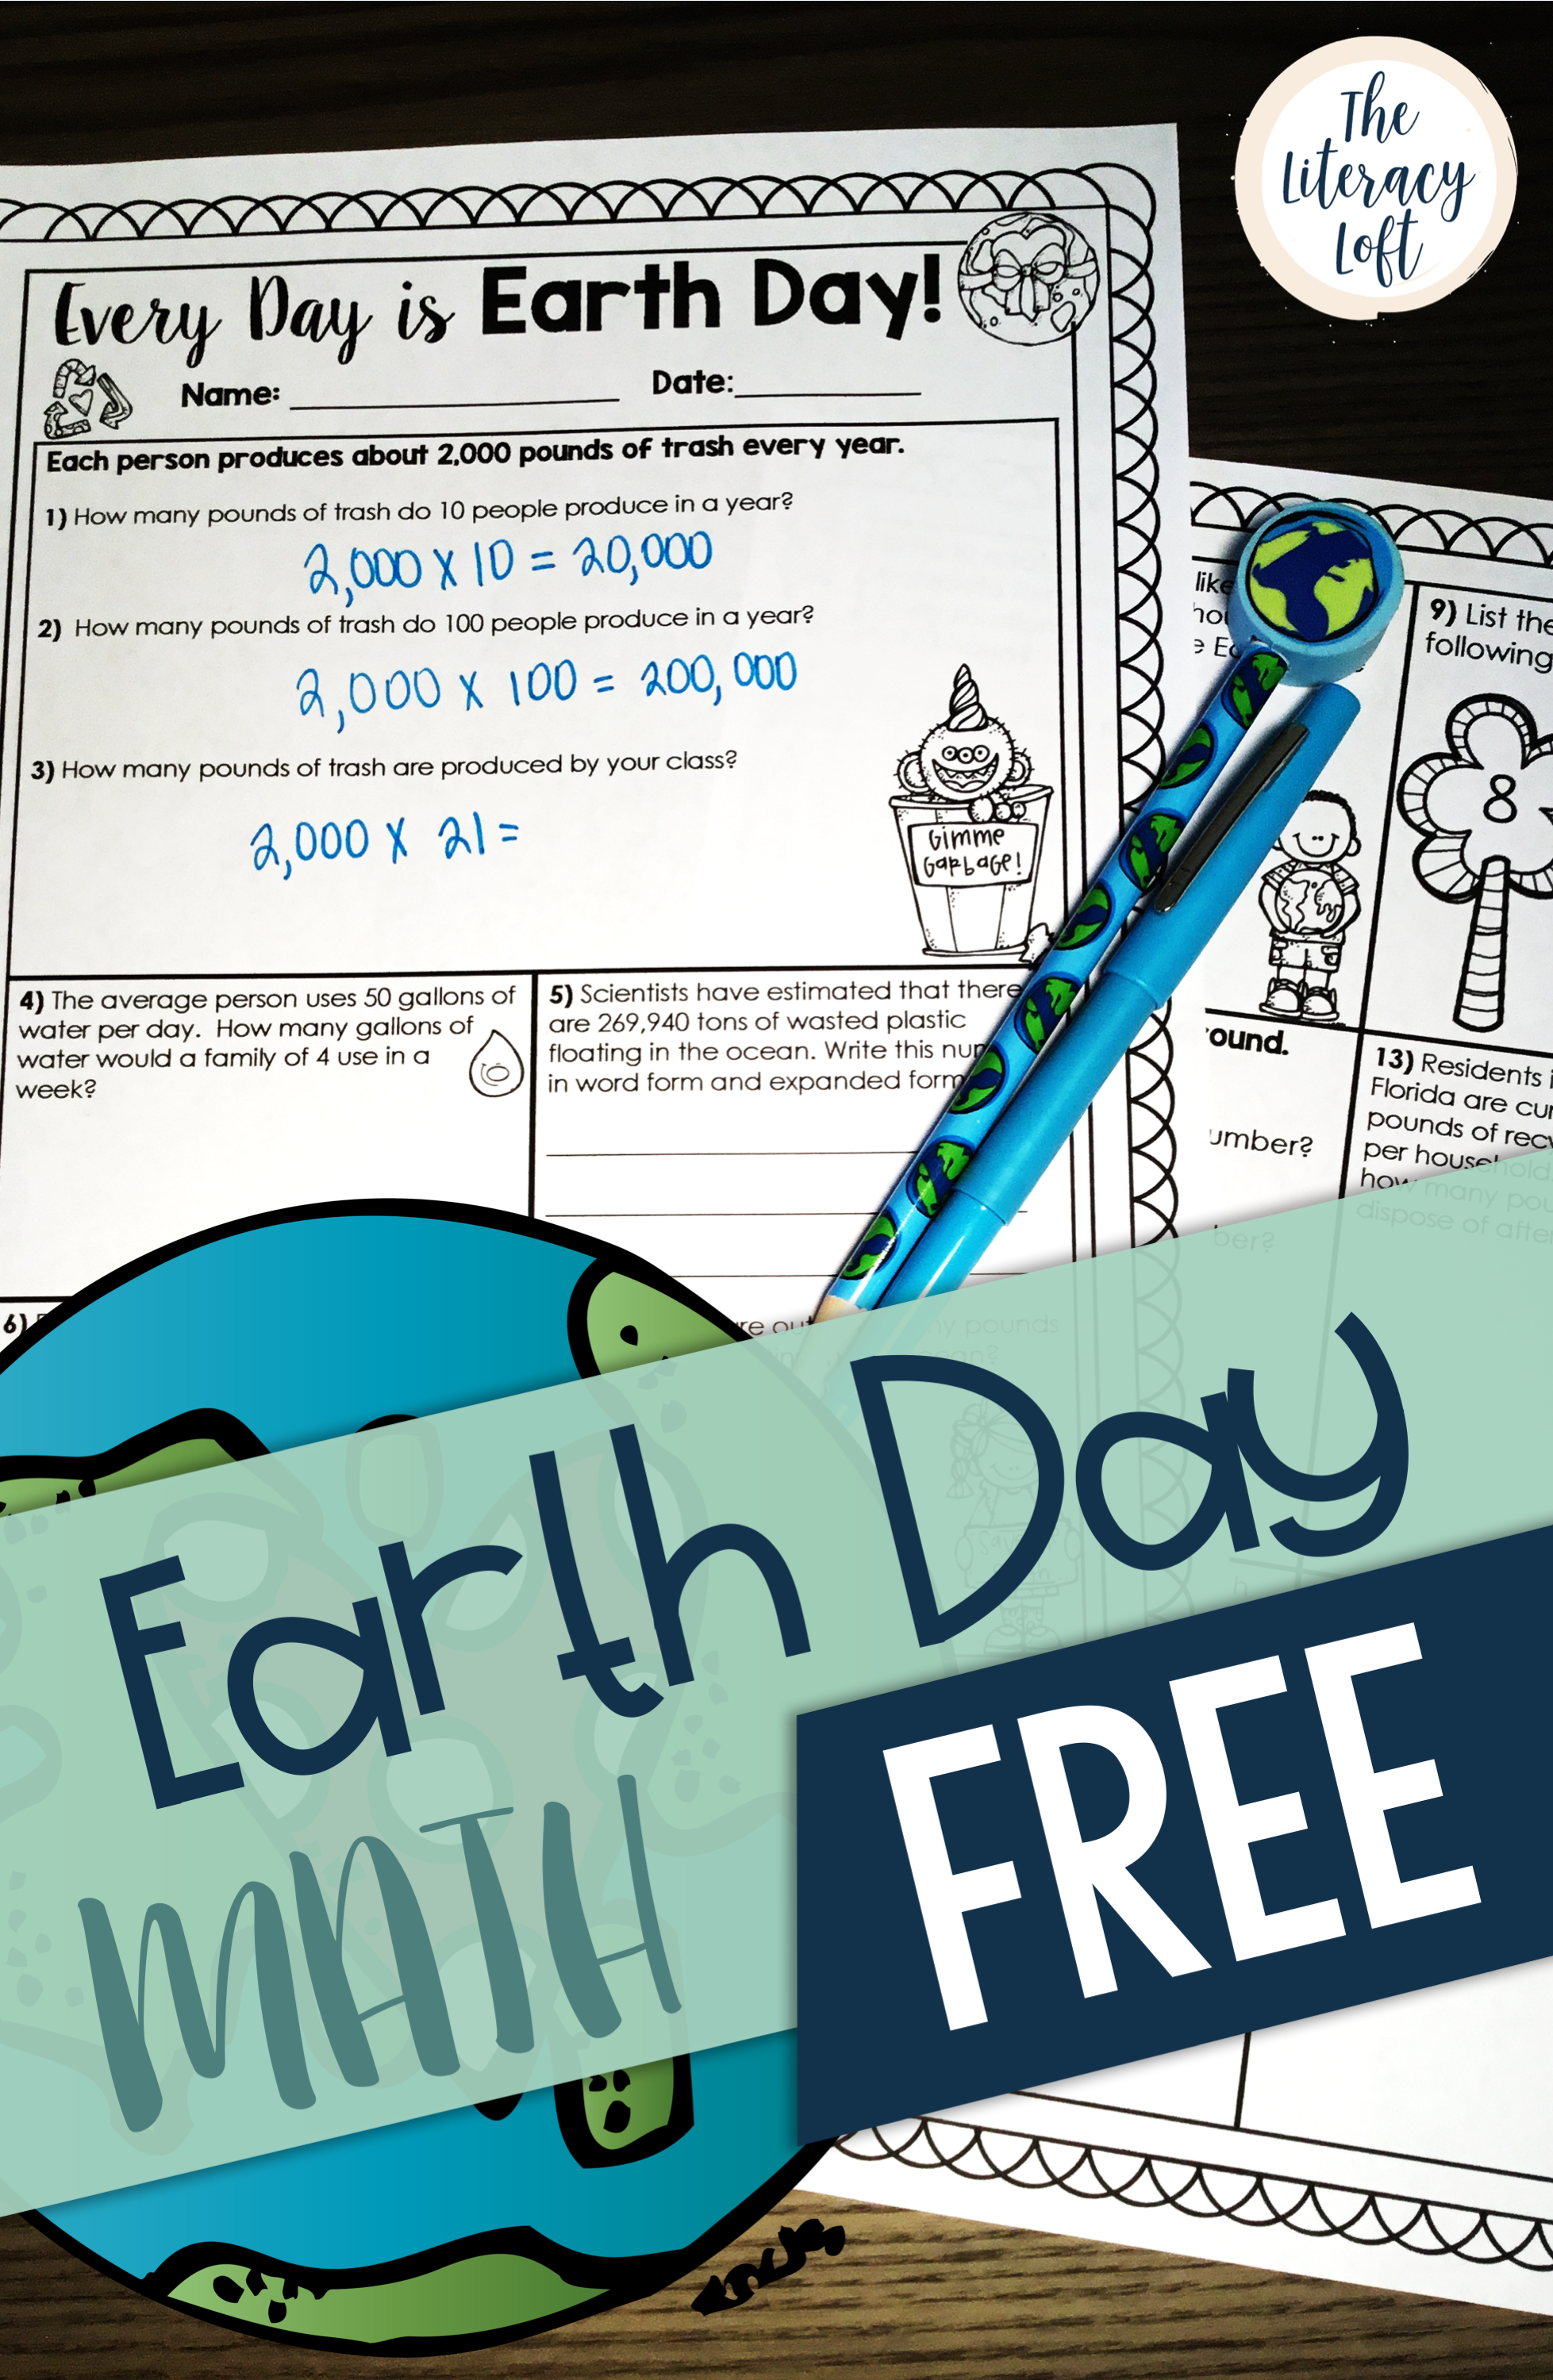 Earth Day Math Free Happy Earth Day This Printable Can